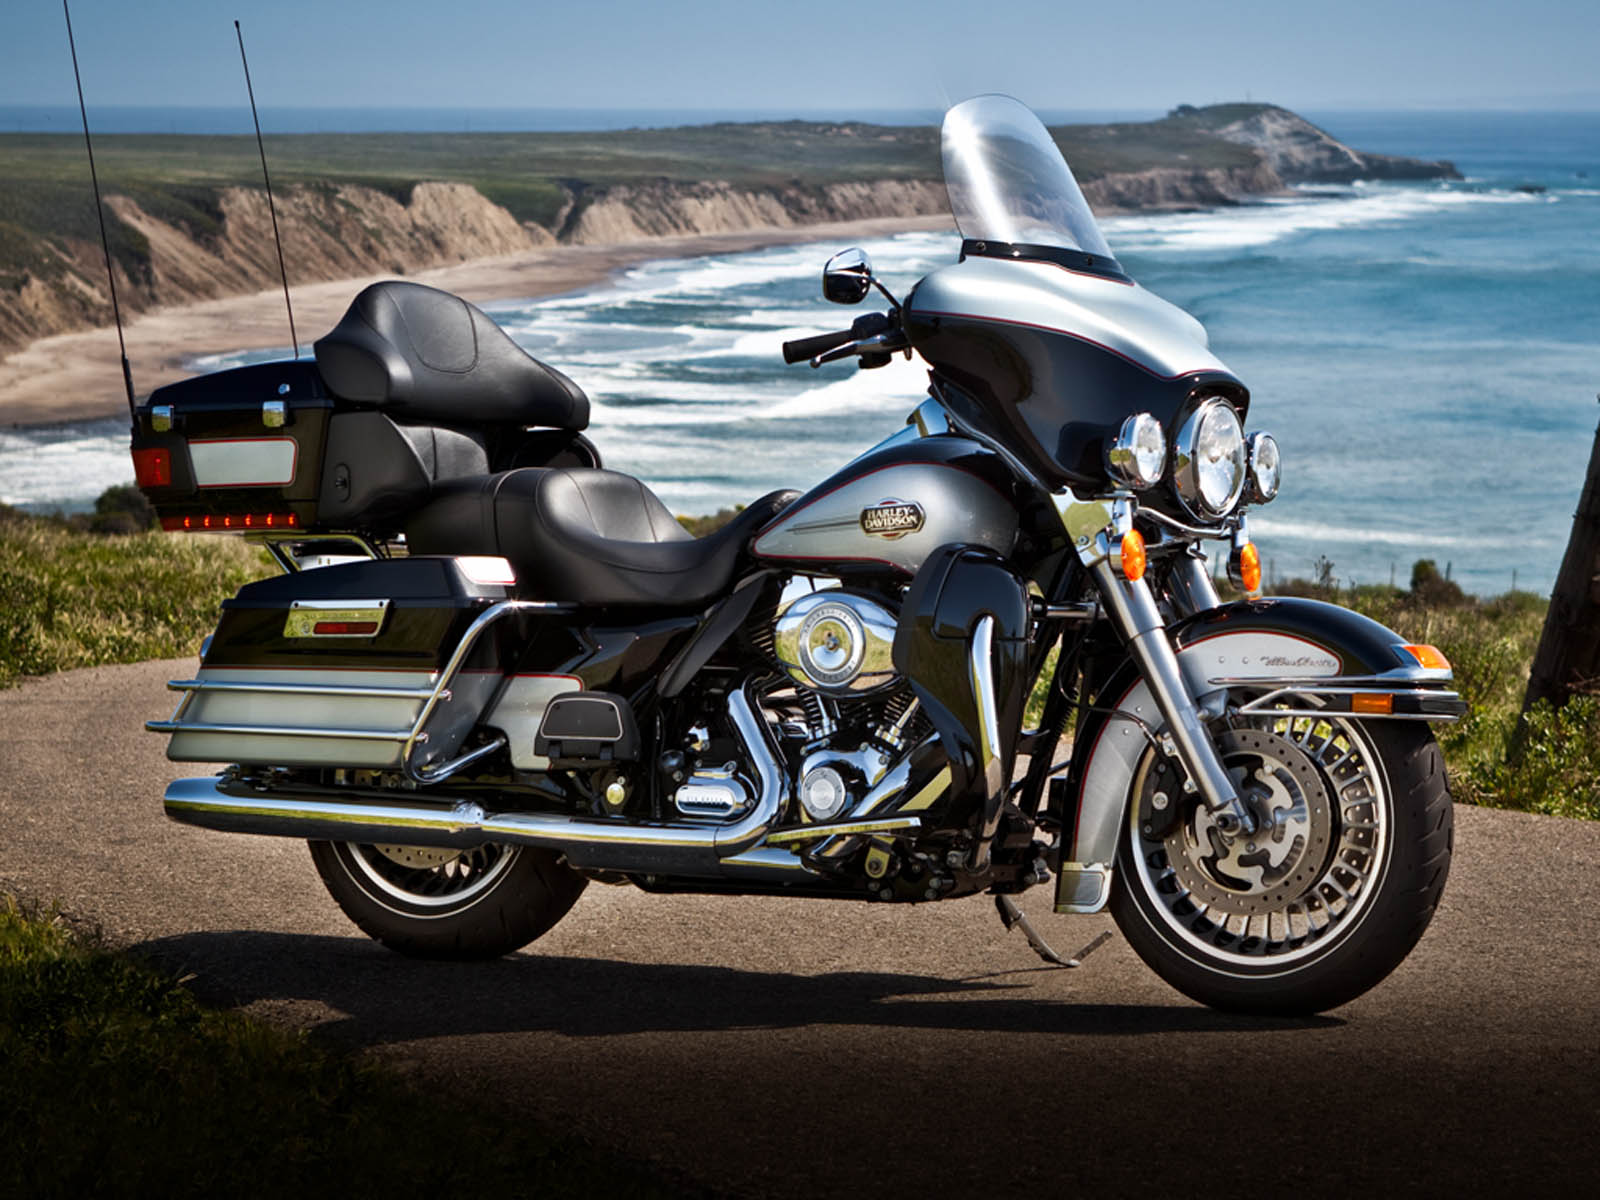 1600x1200 - Harley-Davidson Electra Glide Ultra Classic Wallpapers 10